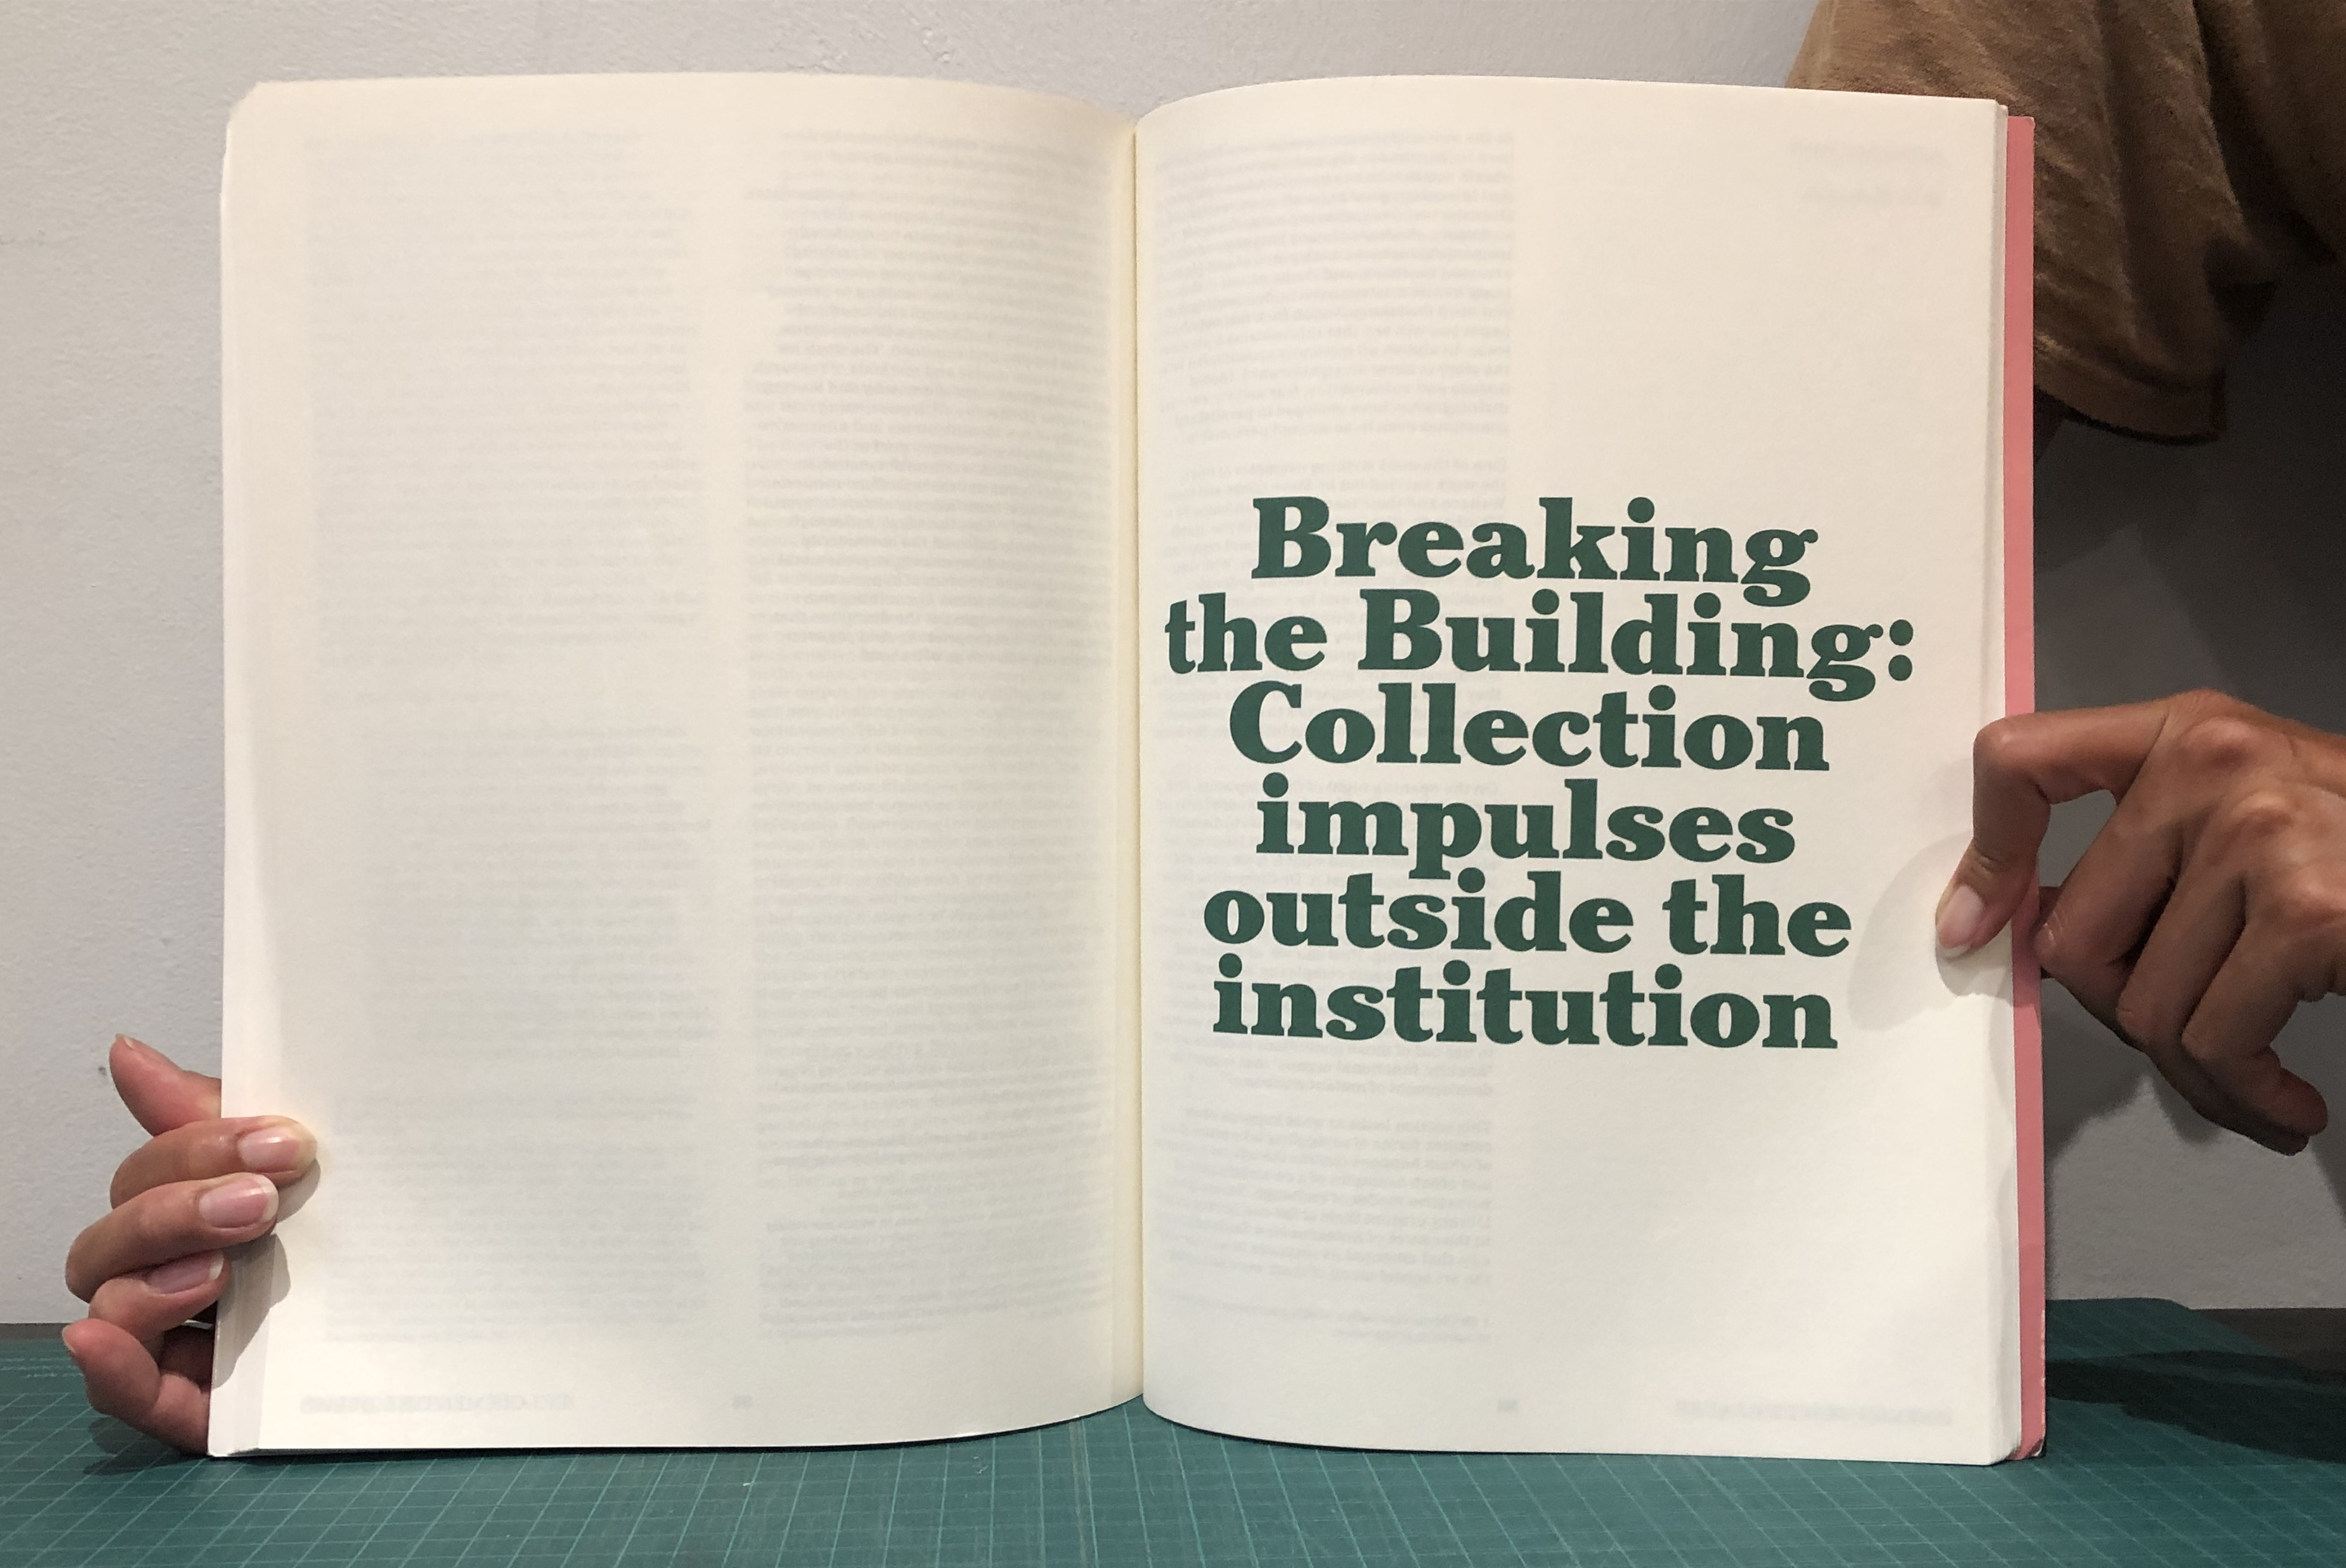 """A book being held open to reveal a spread that reads """"Breaking the Building: Collection impulses outside the institution"""" in green writing."""